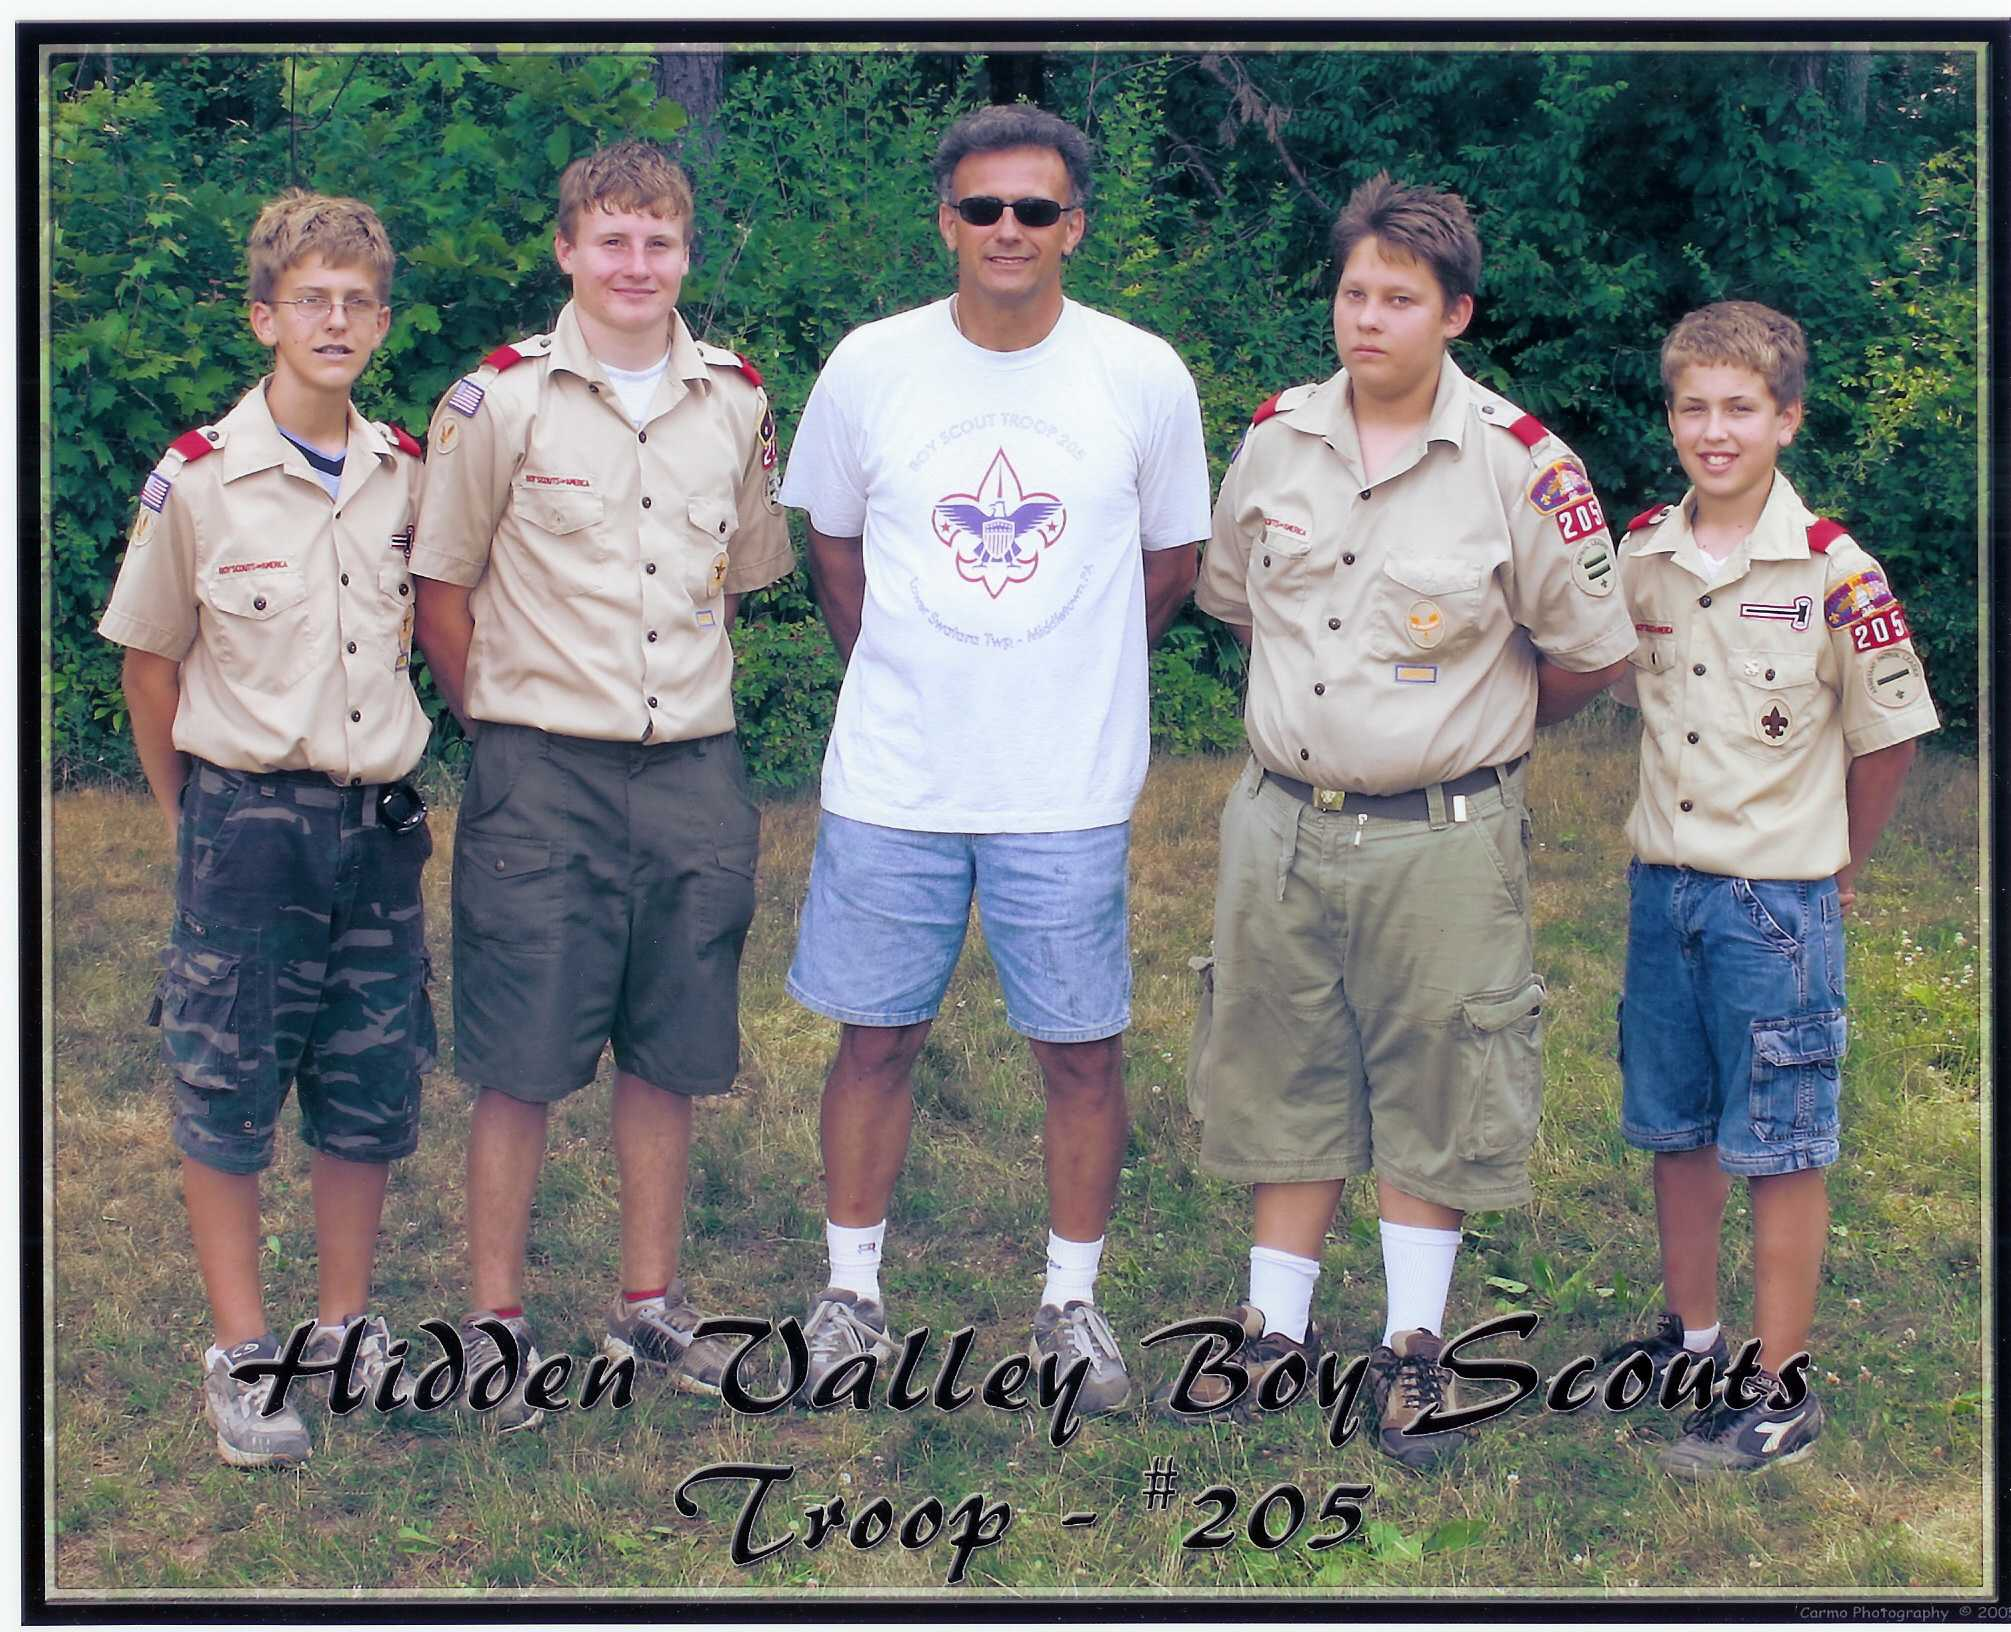 HiddenValleysummercamp2005.jpg